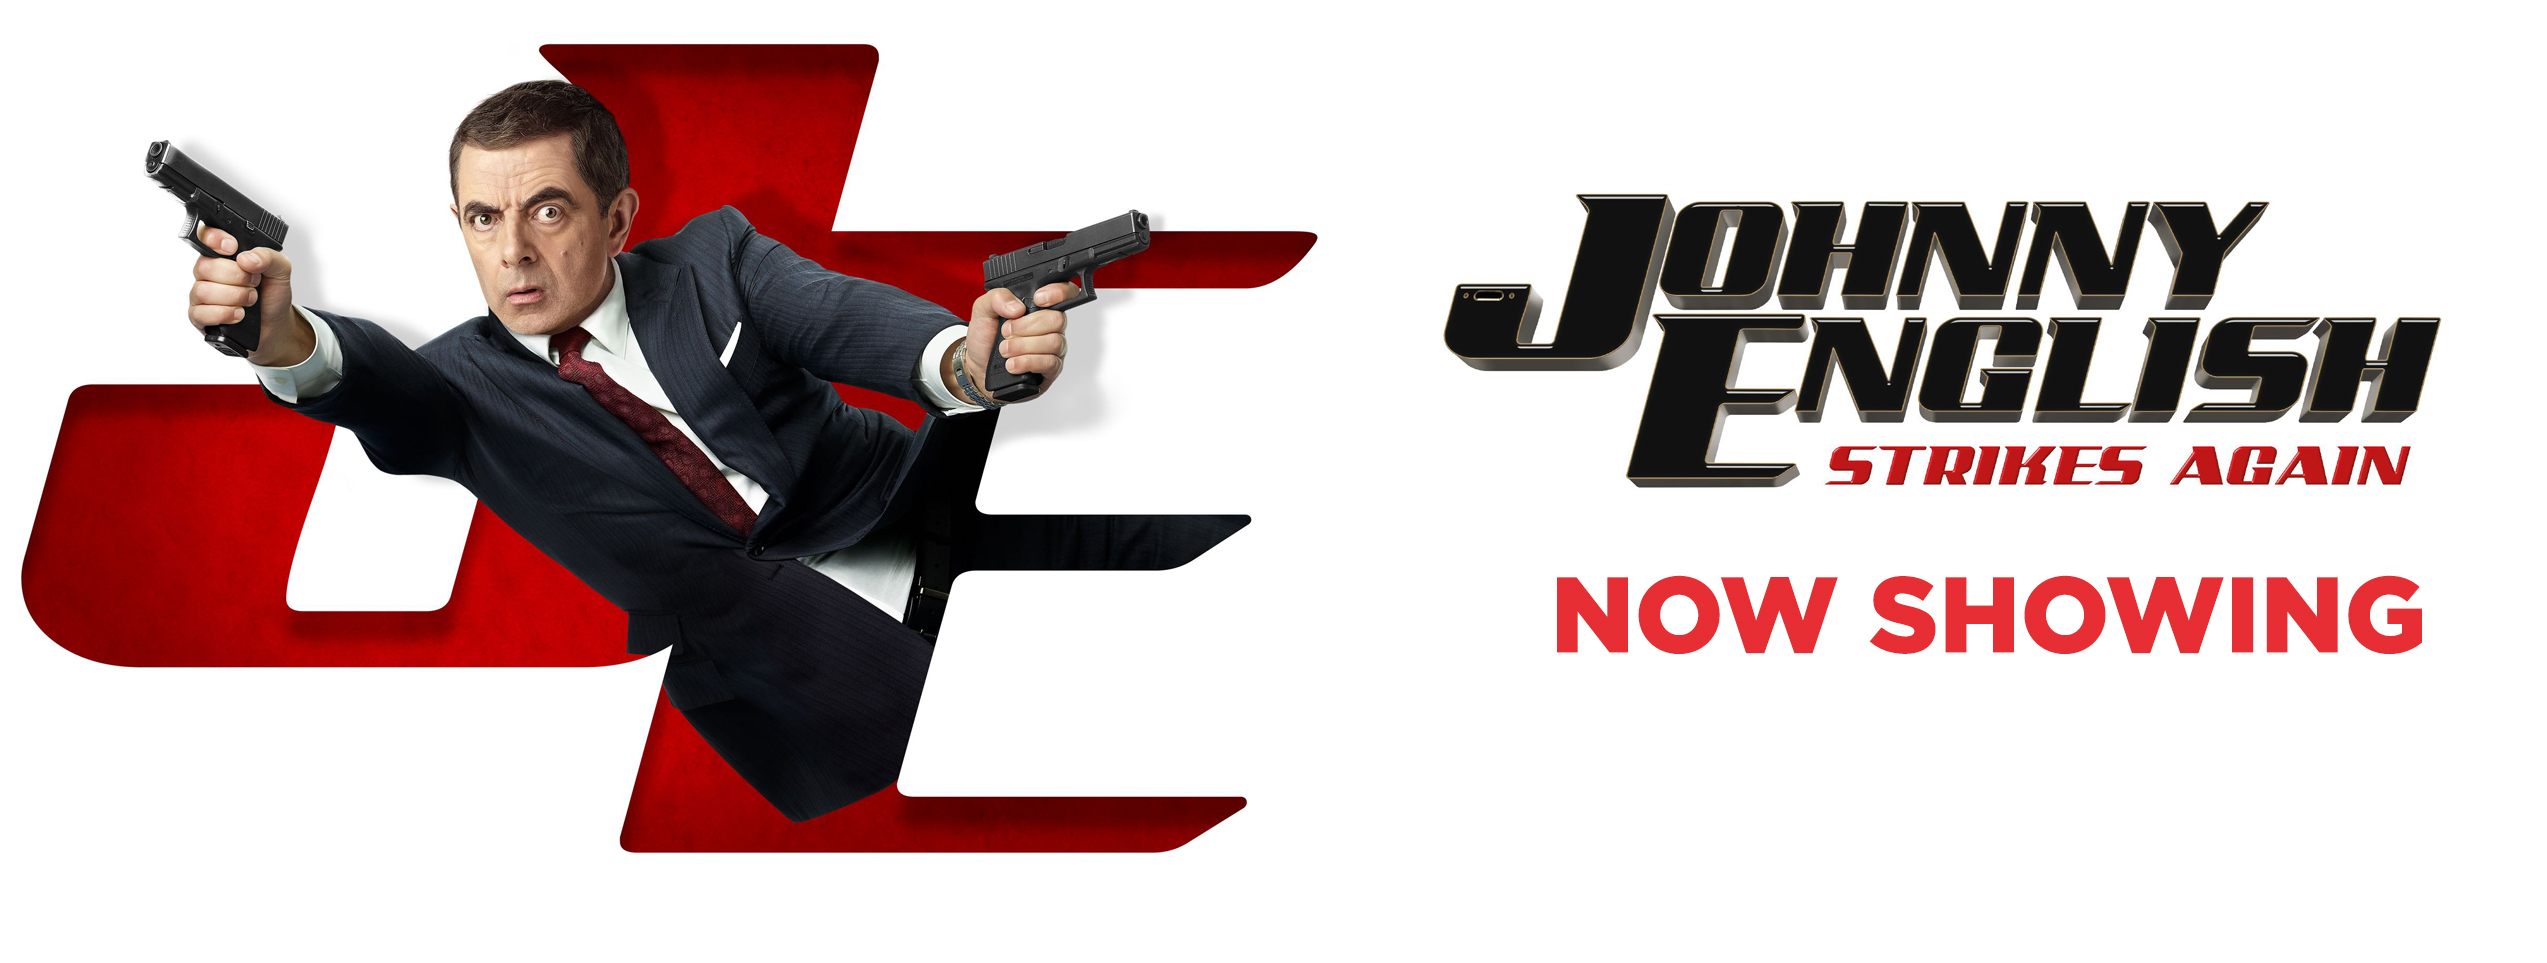 Johnny English Strikes Again (2D) (PG) (Eng)